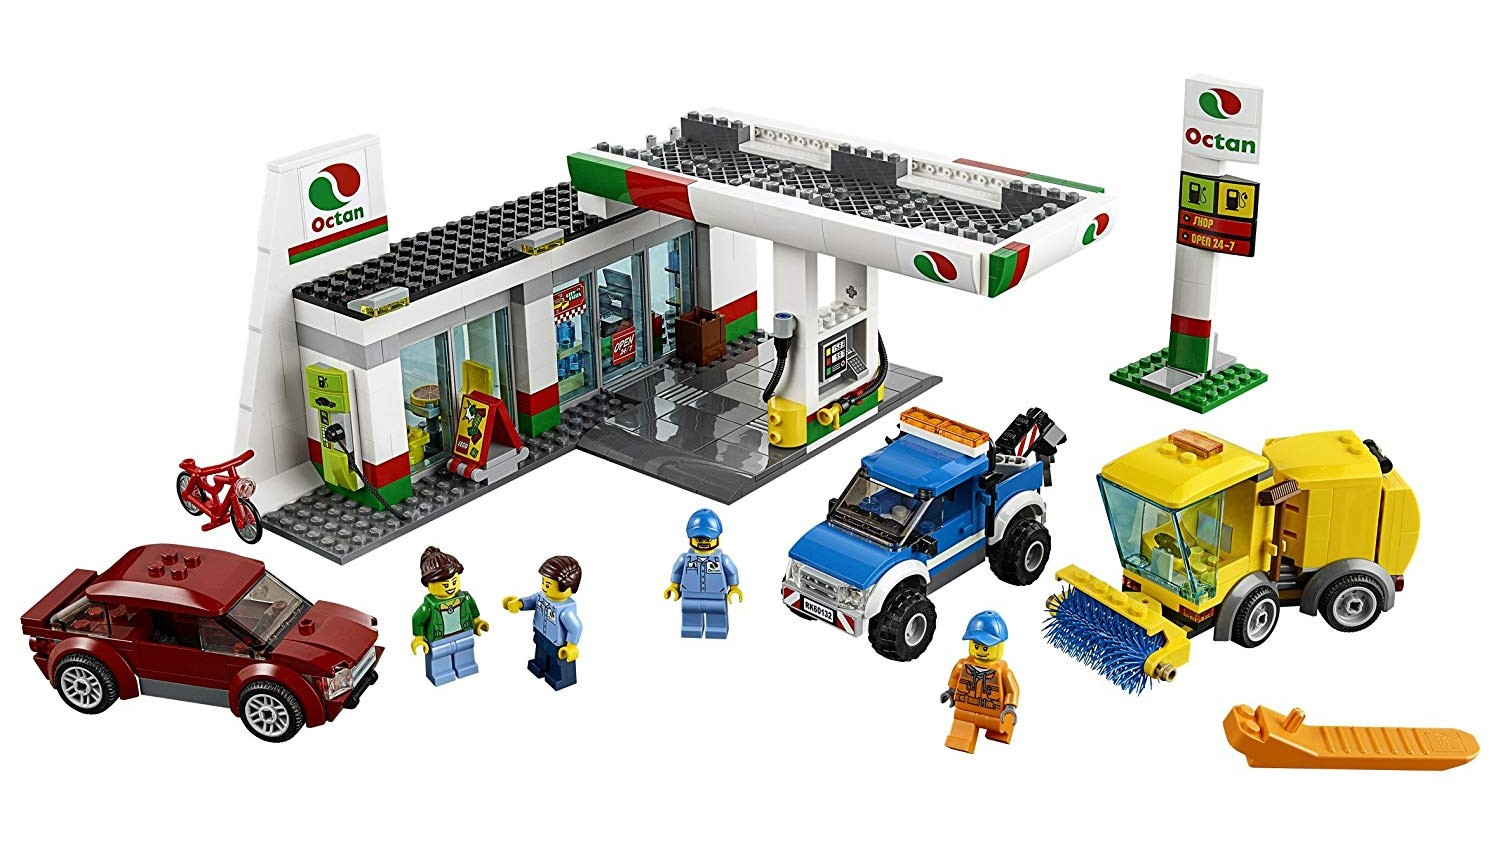 Best Lego City sets: Service Station